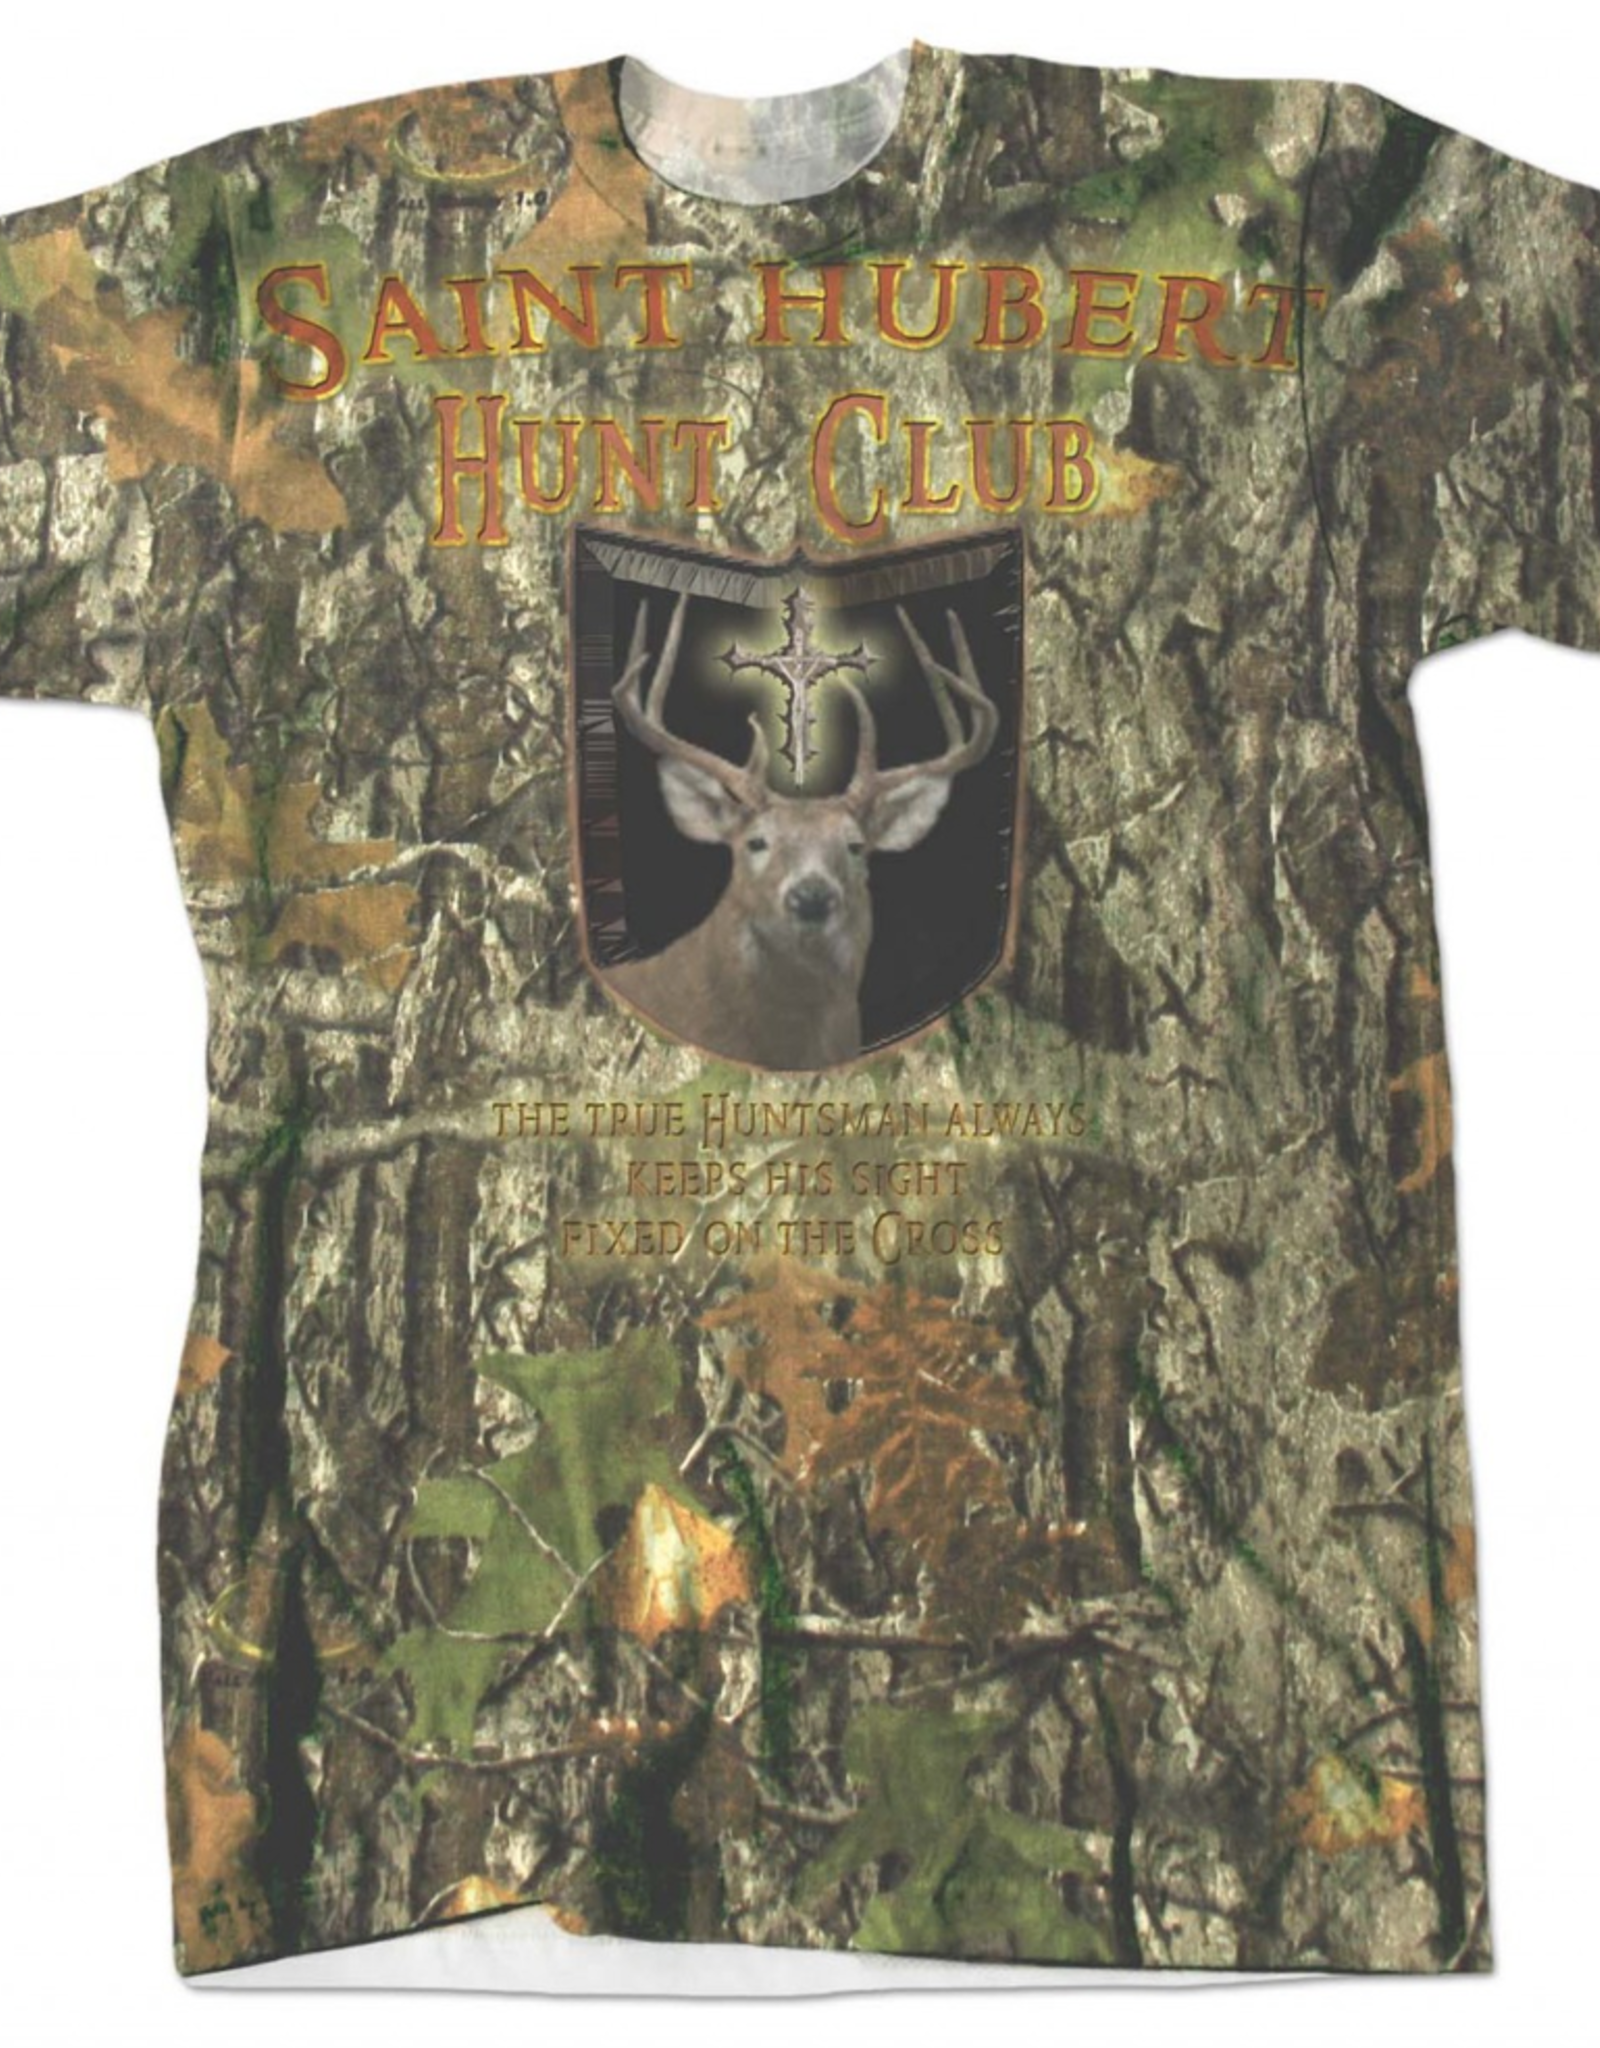 Nelson/Catholic to the Max St. Hubert Hunt Club Full Color T-Shirt